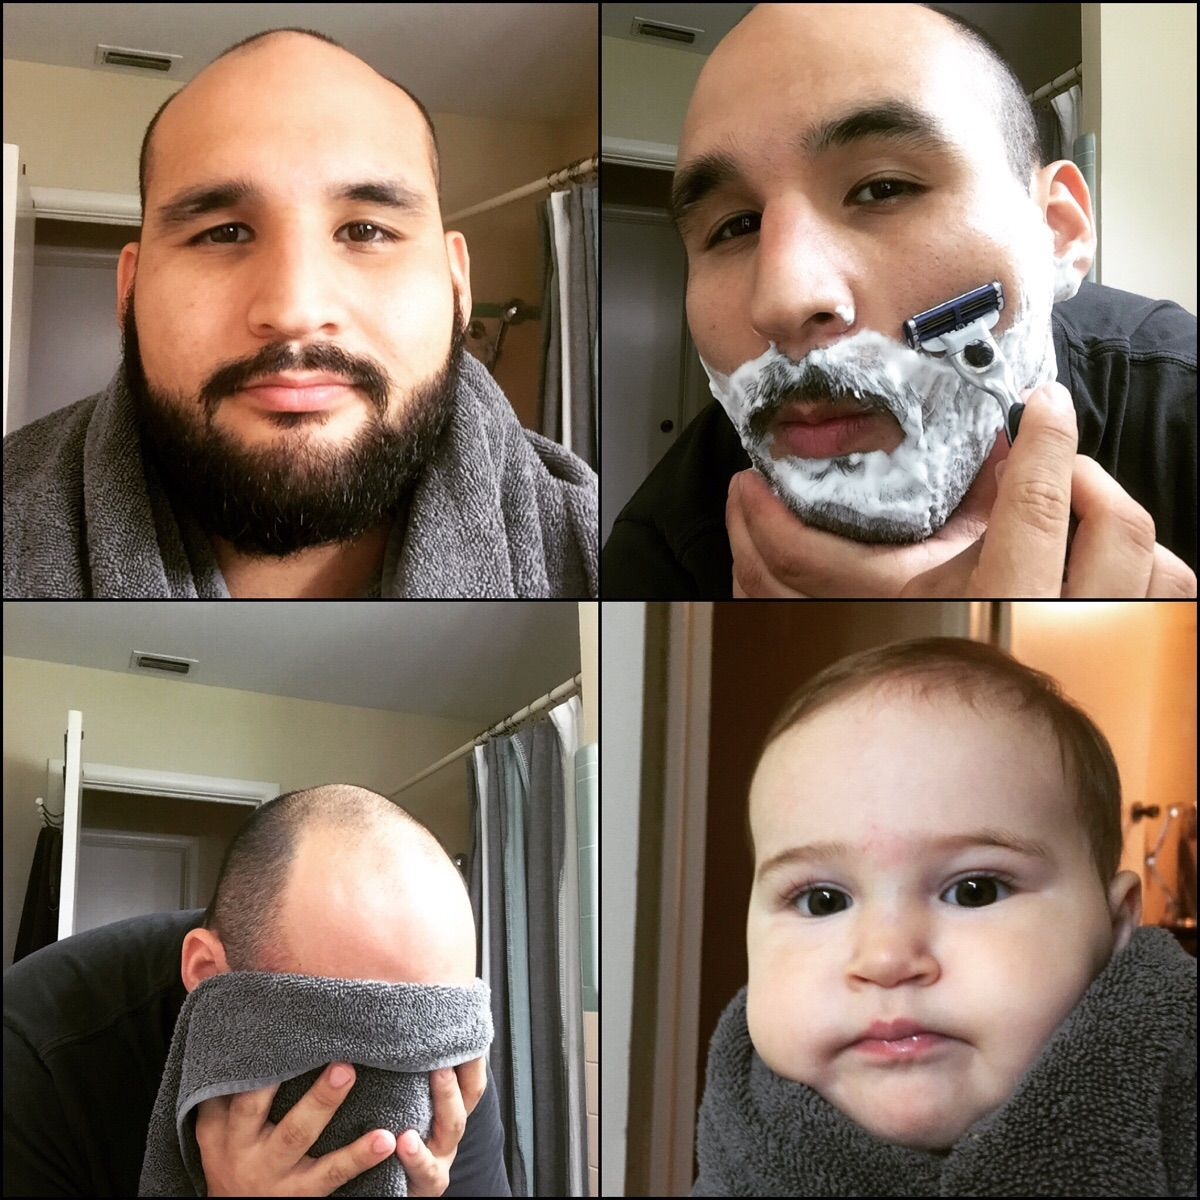 A Clean Shave Takes Years Off Funny People Pictures Funny Pictures People Around The World